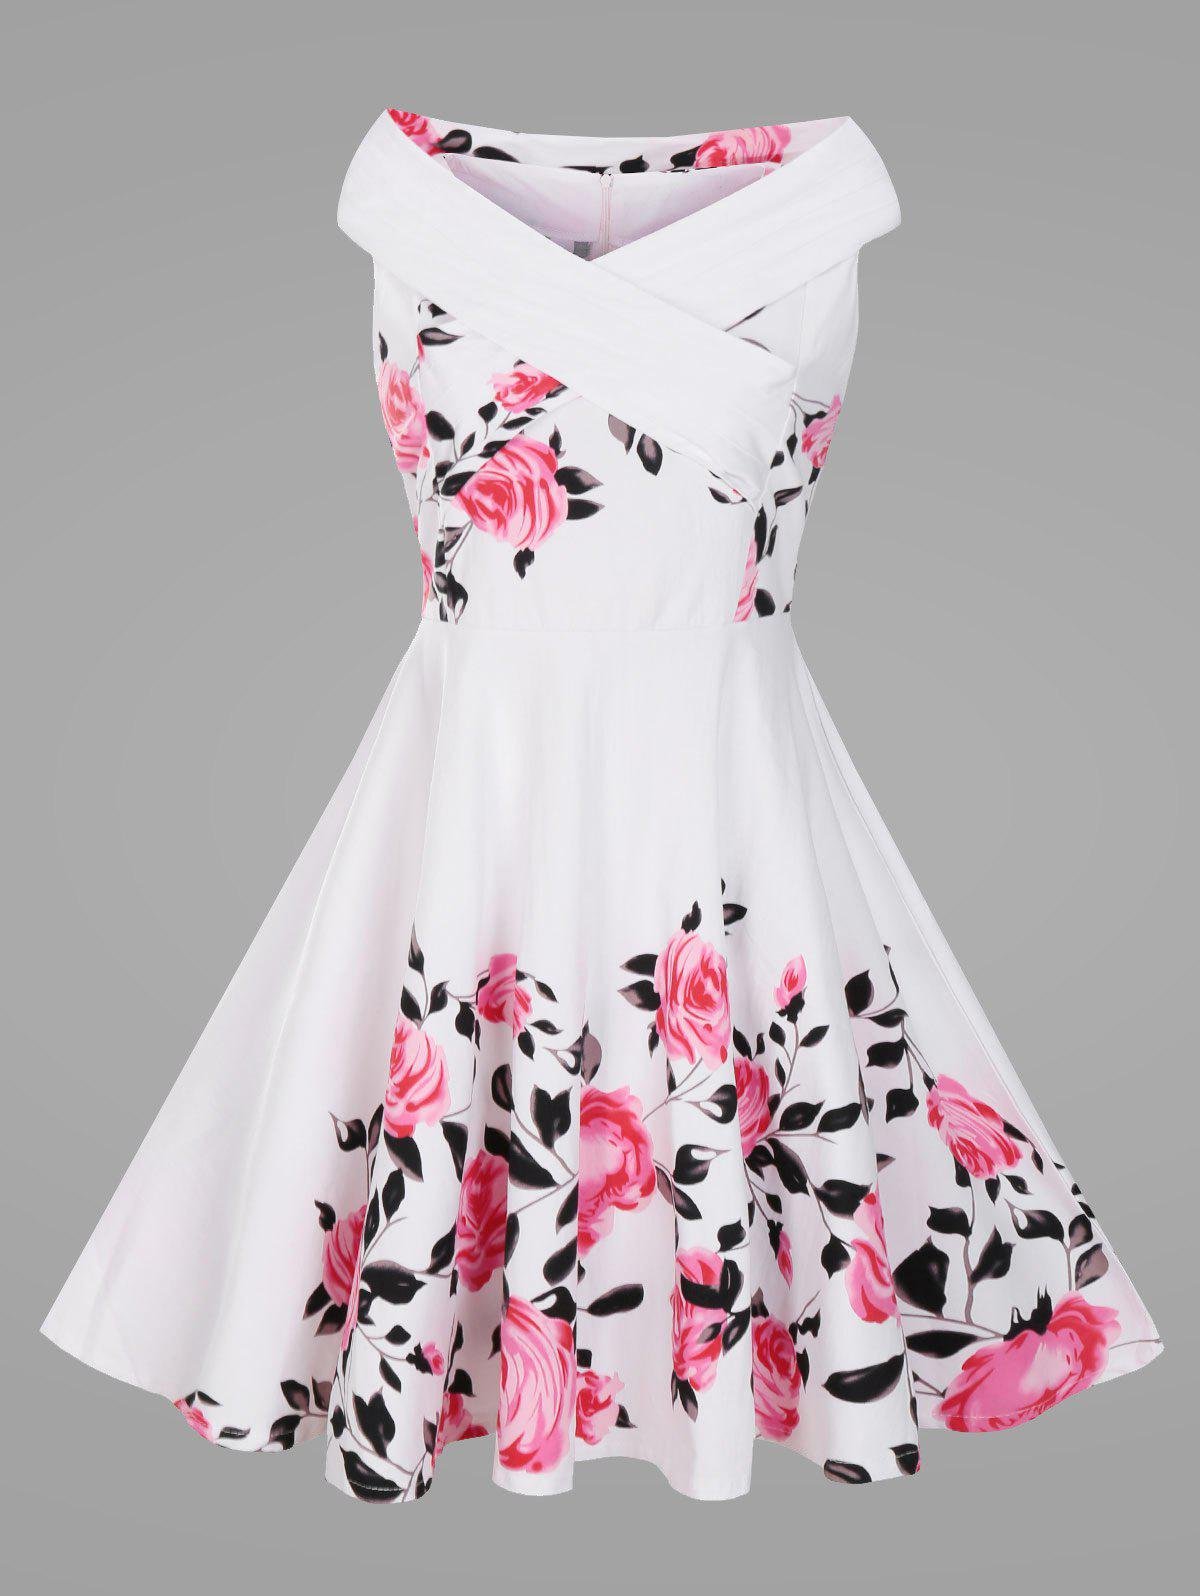 Criss Cross Plus Size Floral Retro Pin Up Dress criss cross plus size floral retro pin up dress